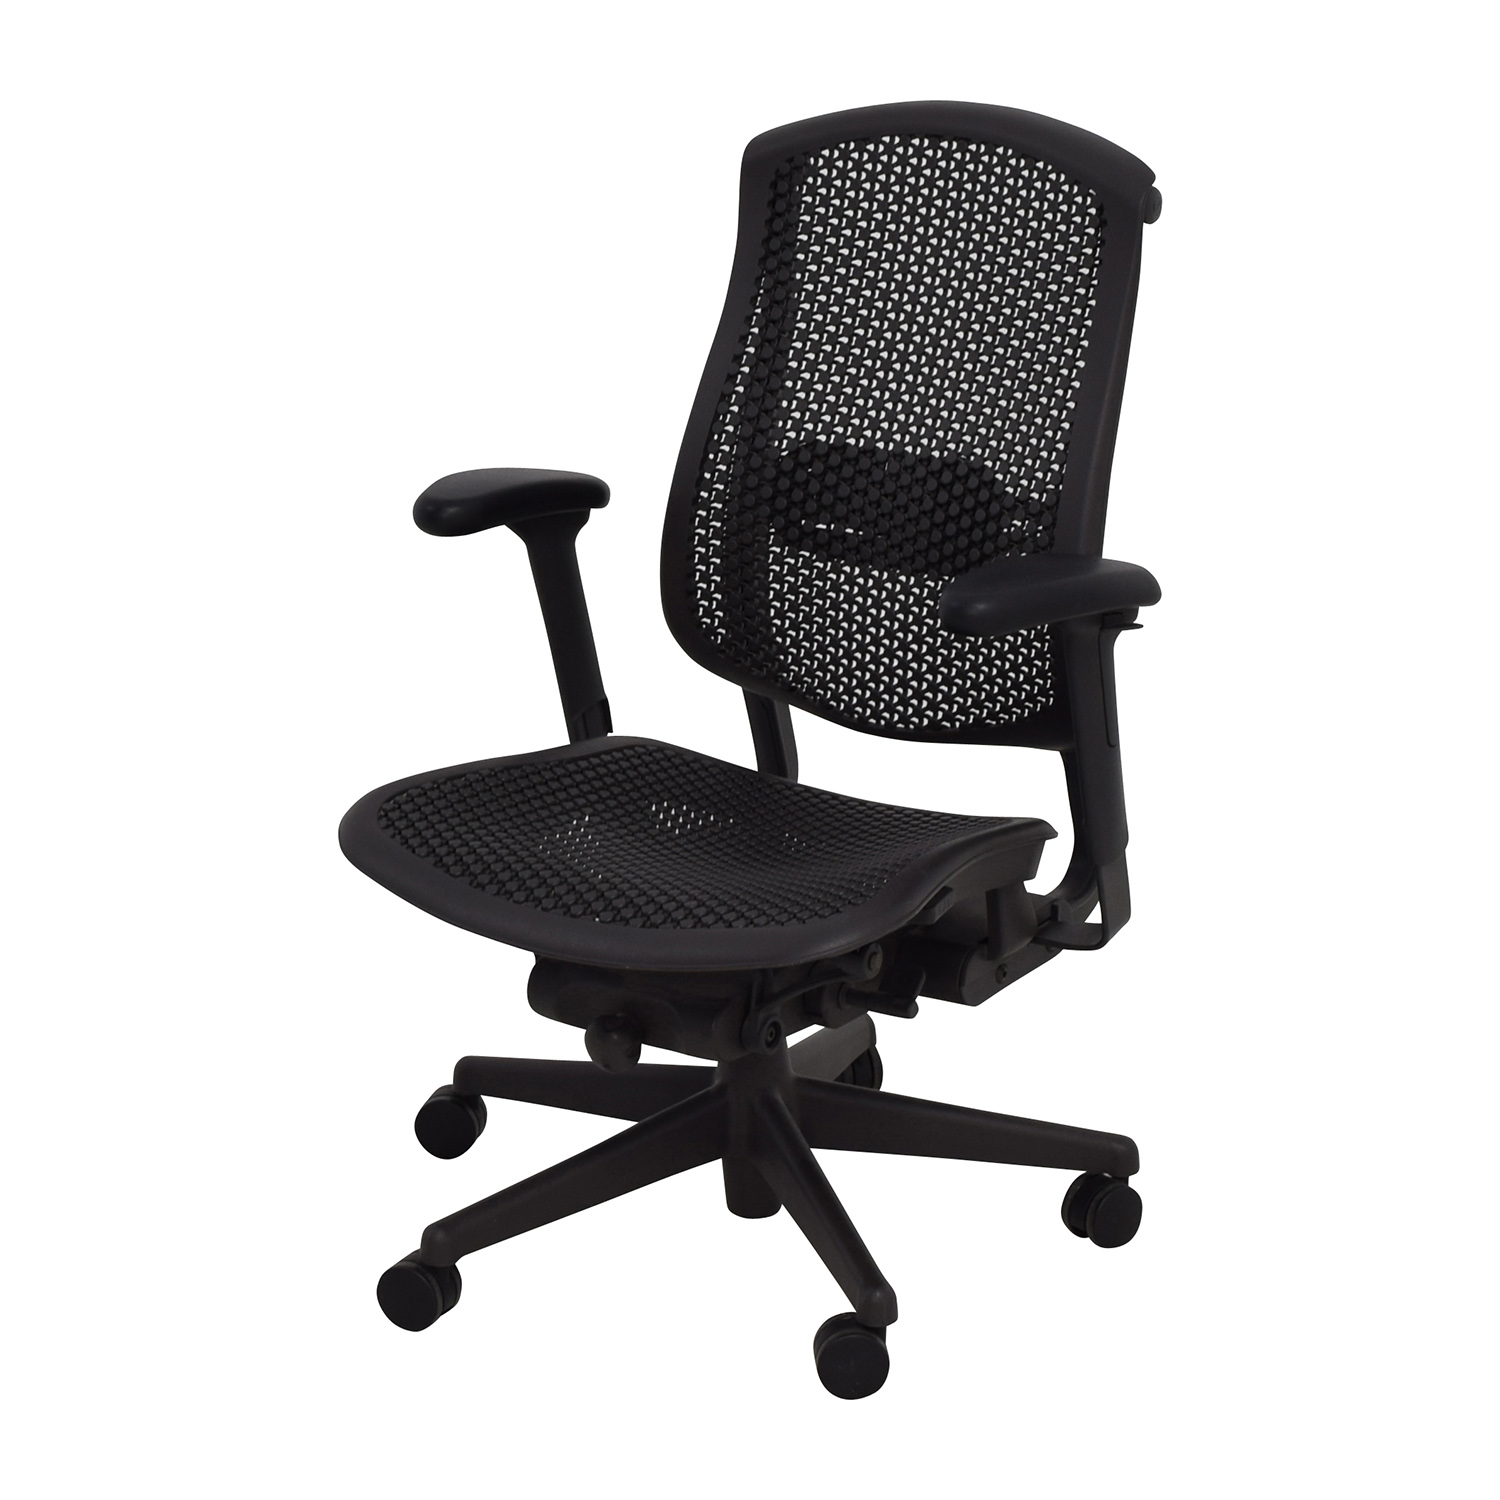 Black Desk Chair 52% off - herman miller herman miller biomorph ergonomic black